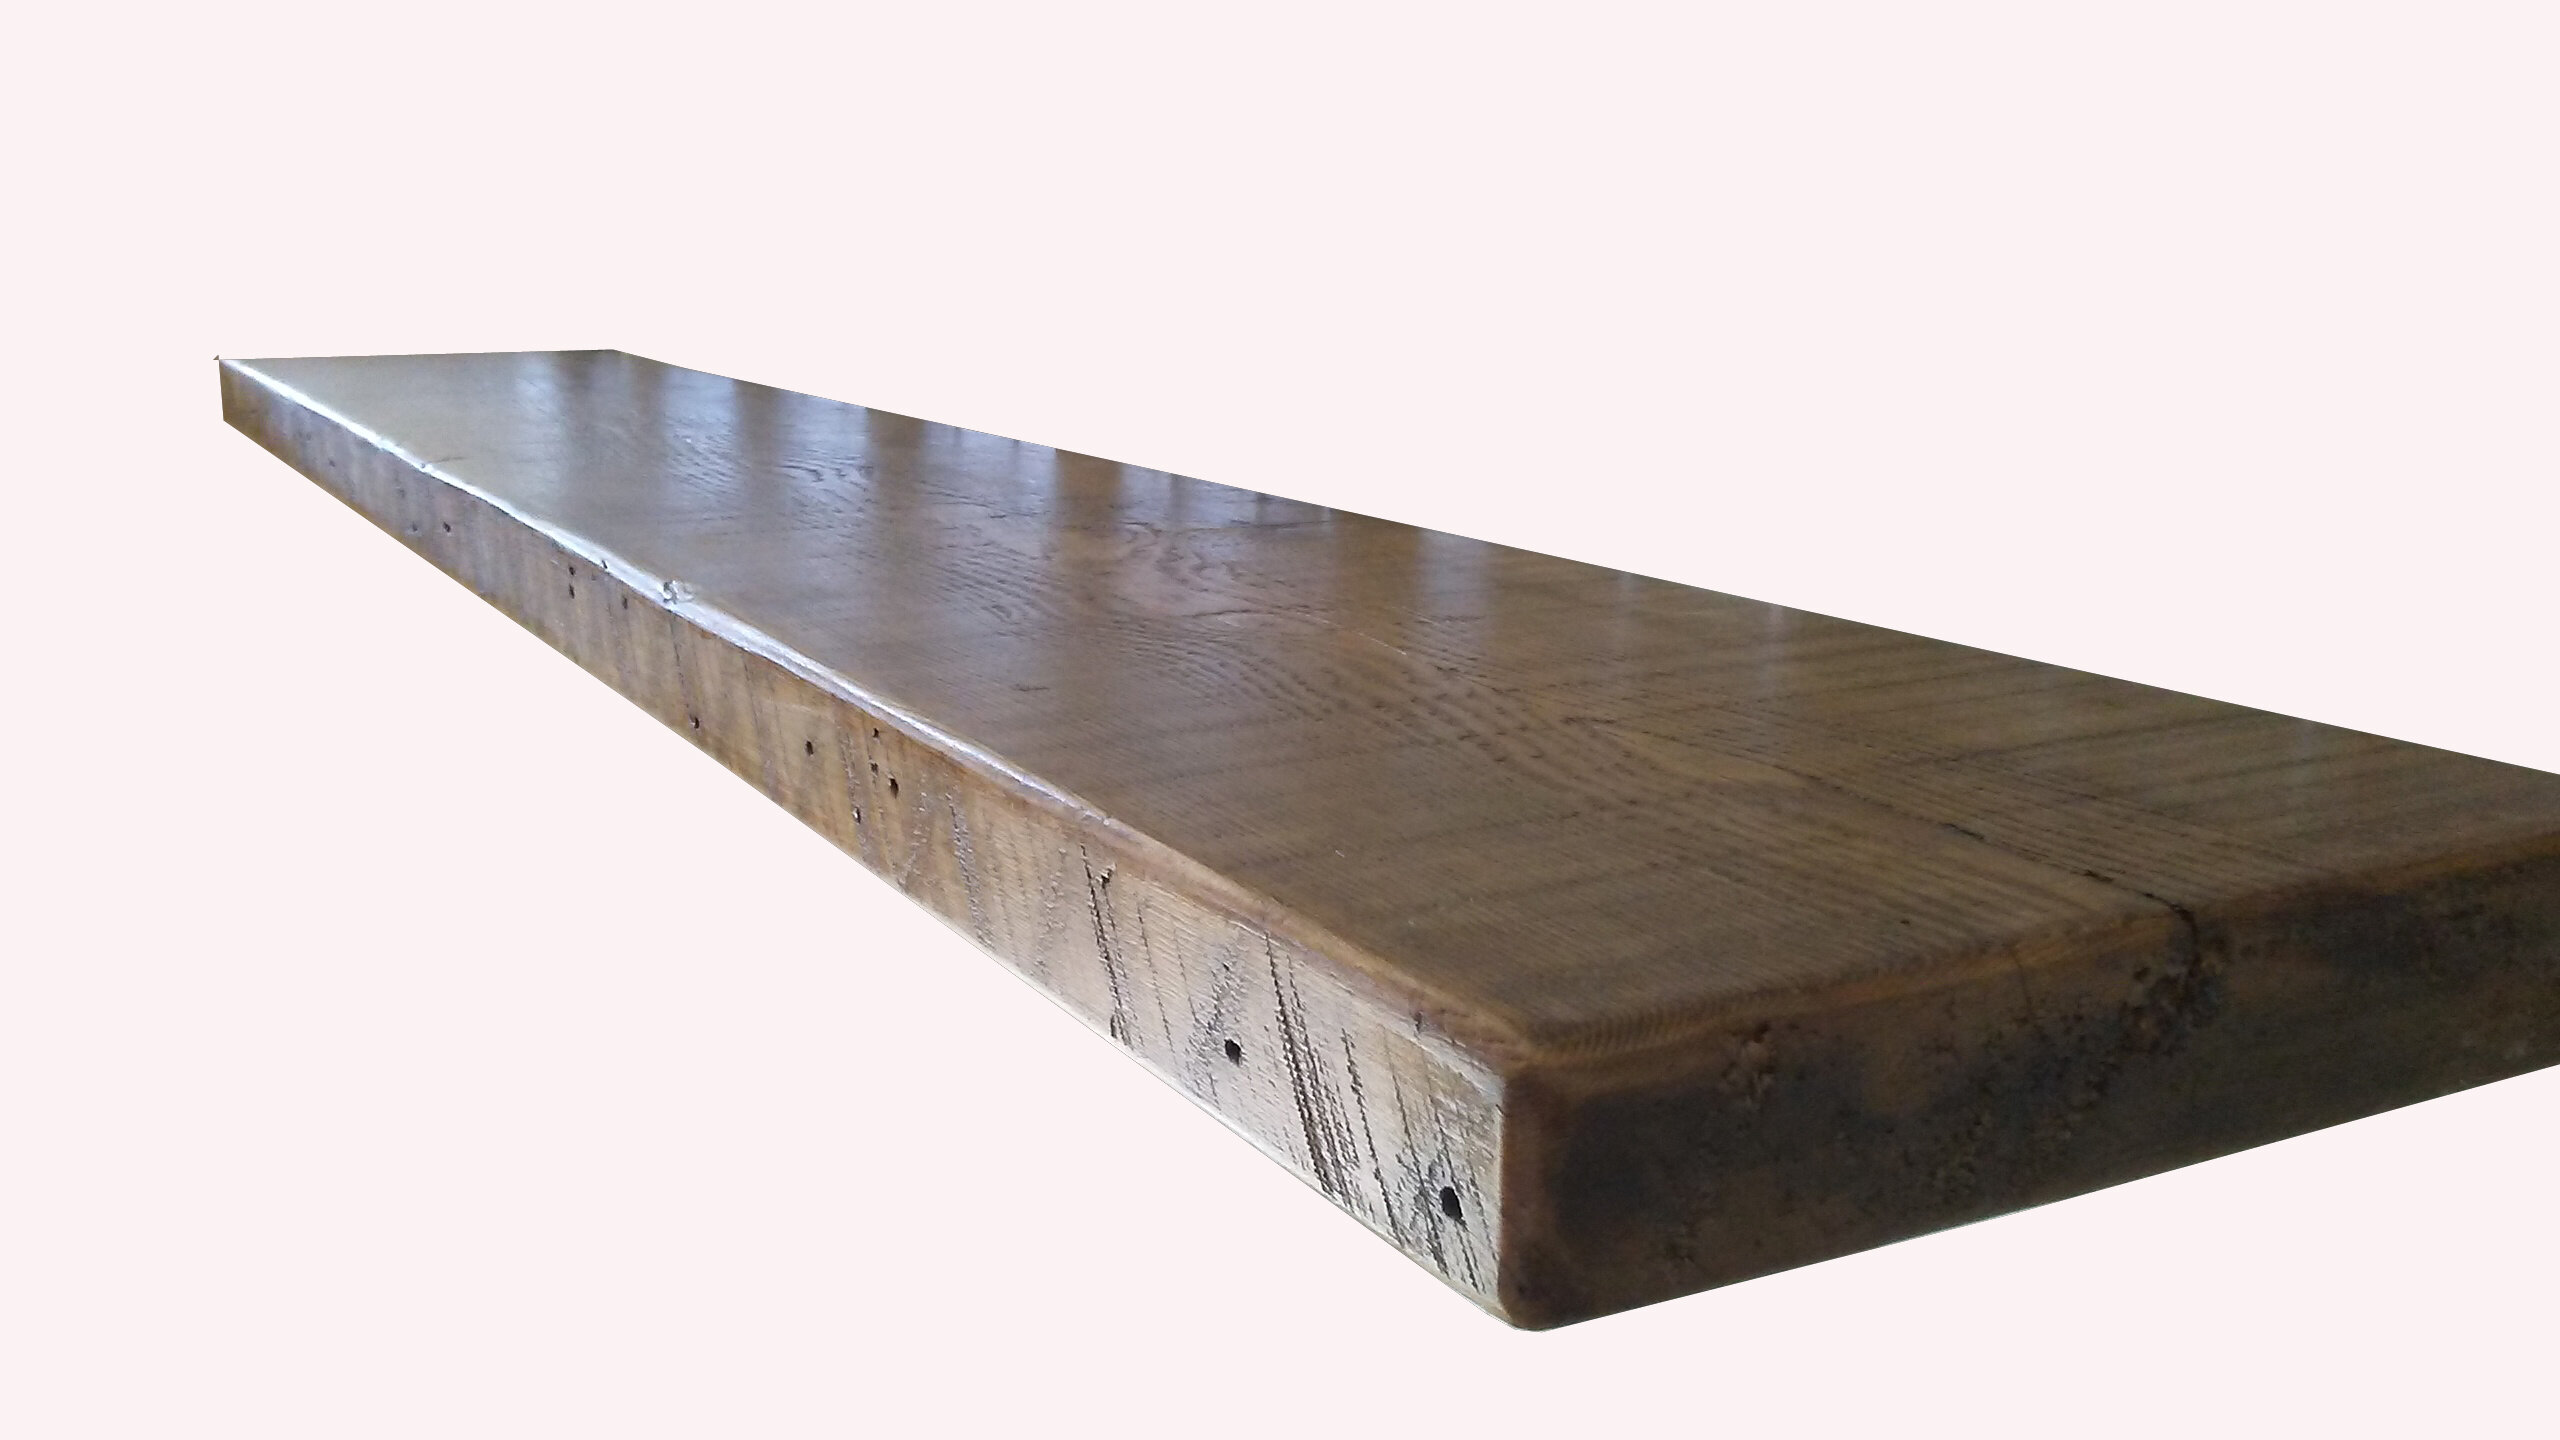 millwood pines cloran floating shelf w &experiencetype=2&selectedvertical=2&piid=